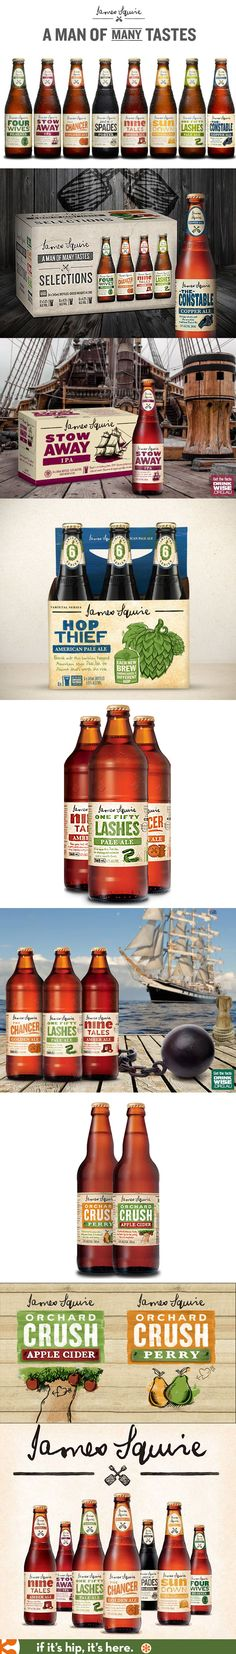 Labels and Packaging for James Squires Craft Beers and Beverages